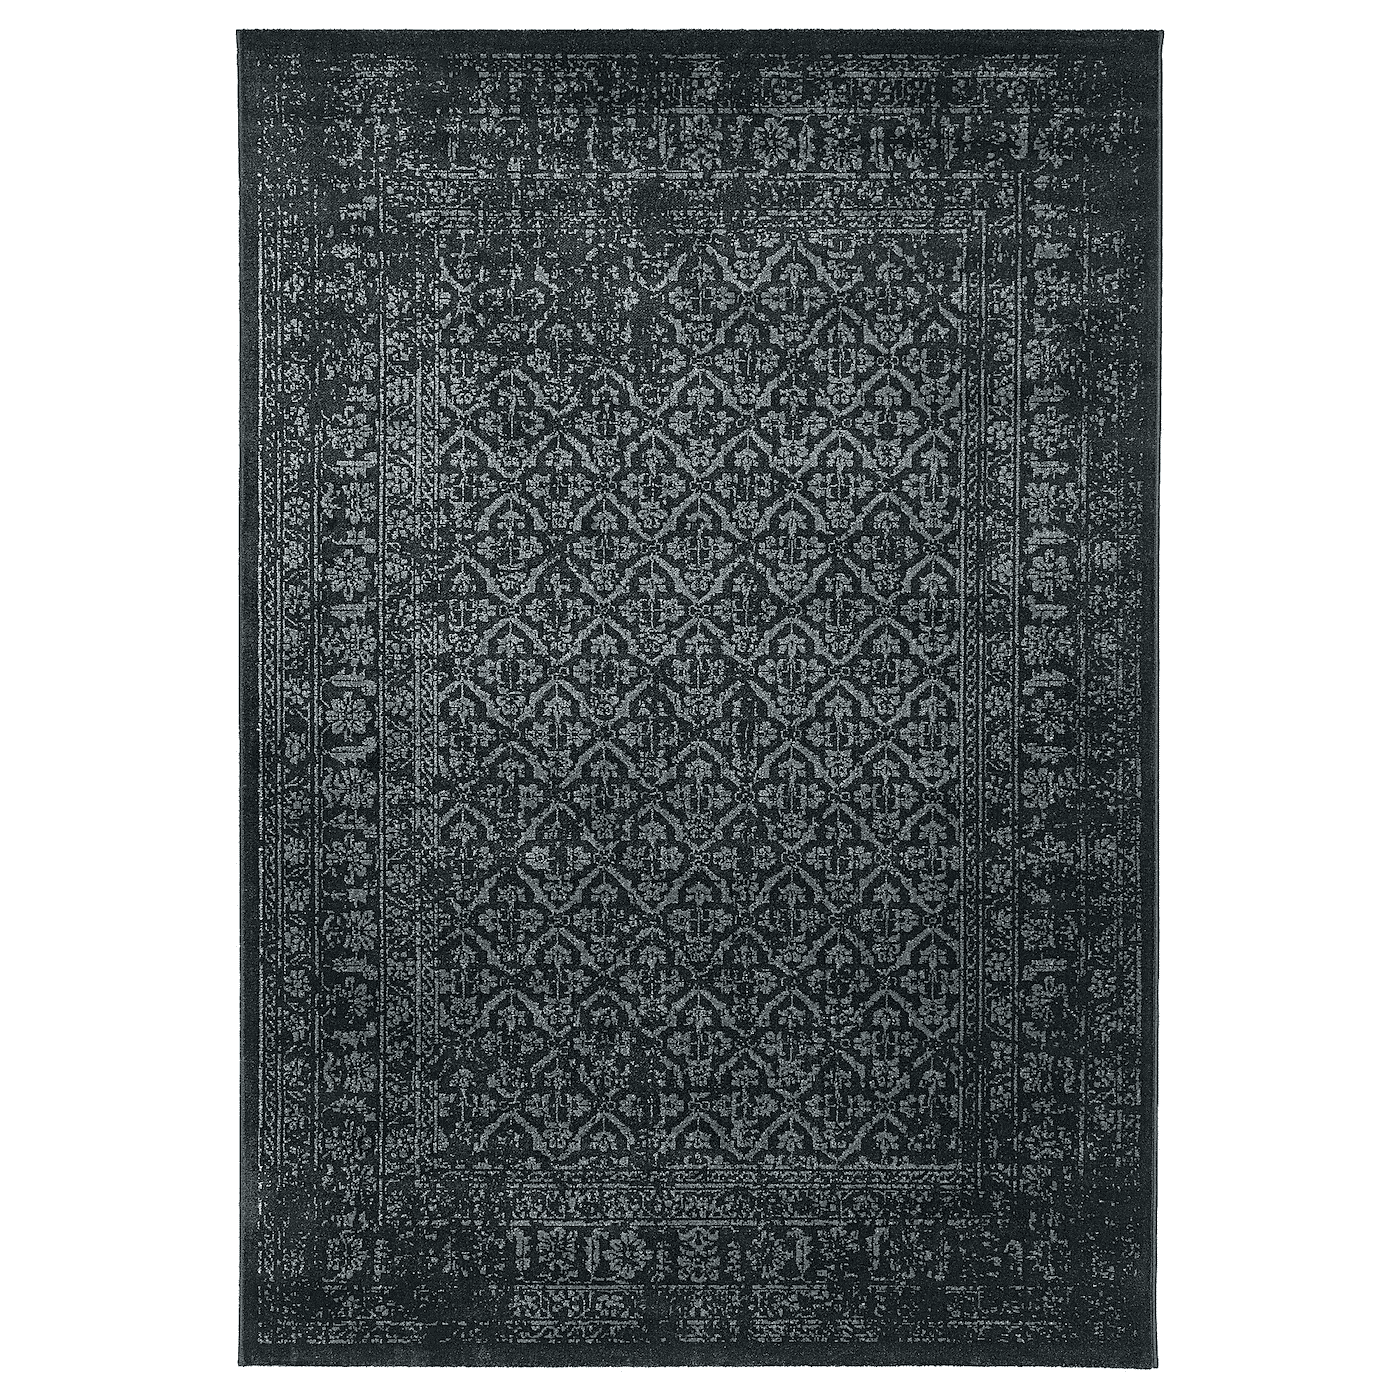 KYNDBY Rug, low pile, gray antique look, floral patterned